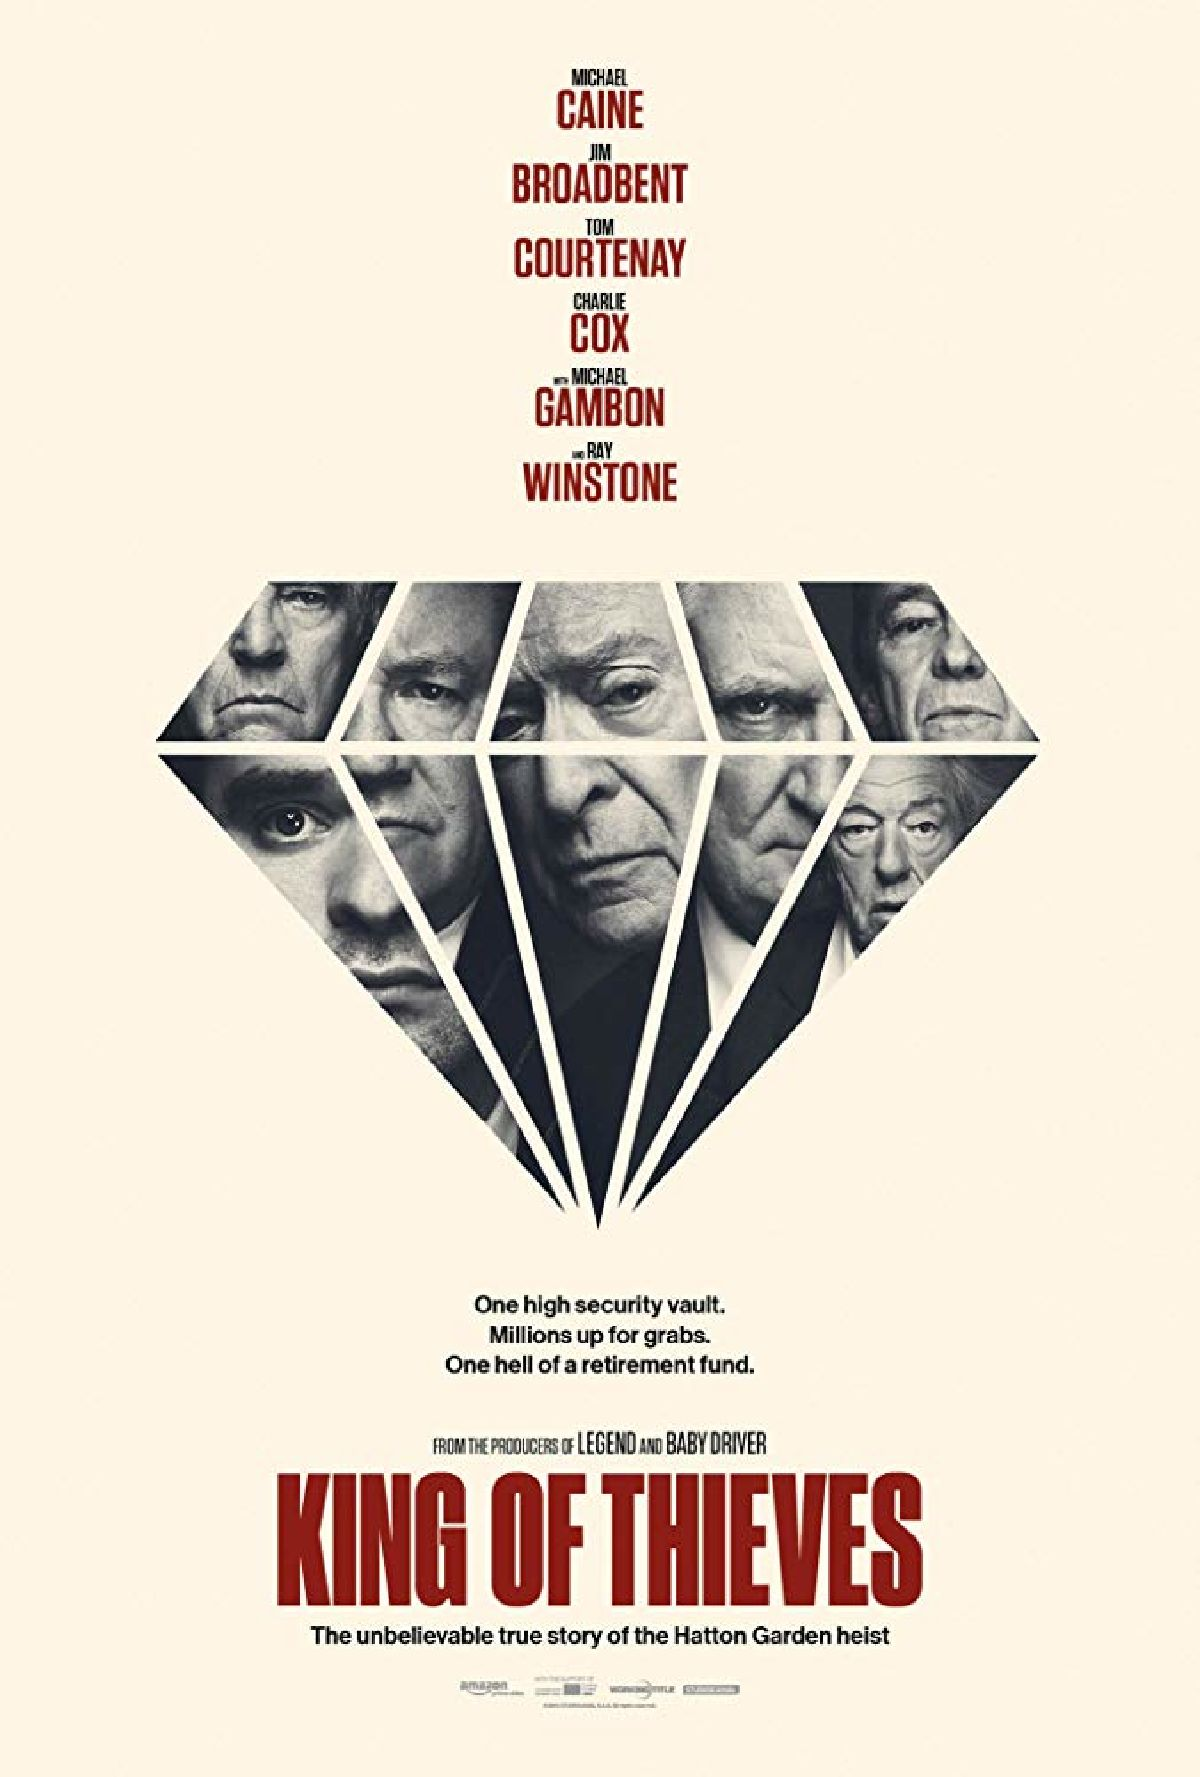 'King Of Thieves' movie poster